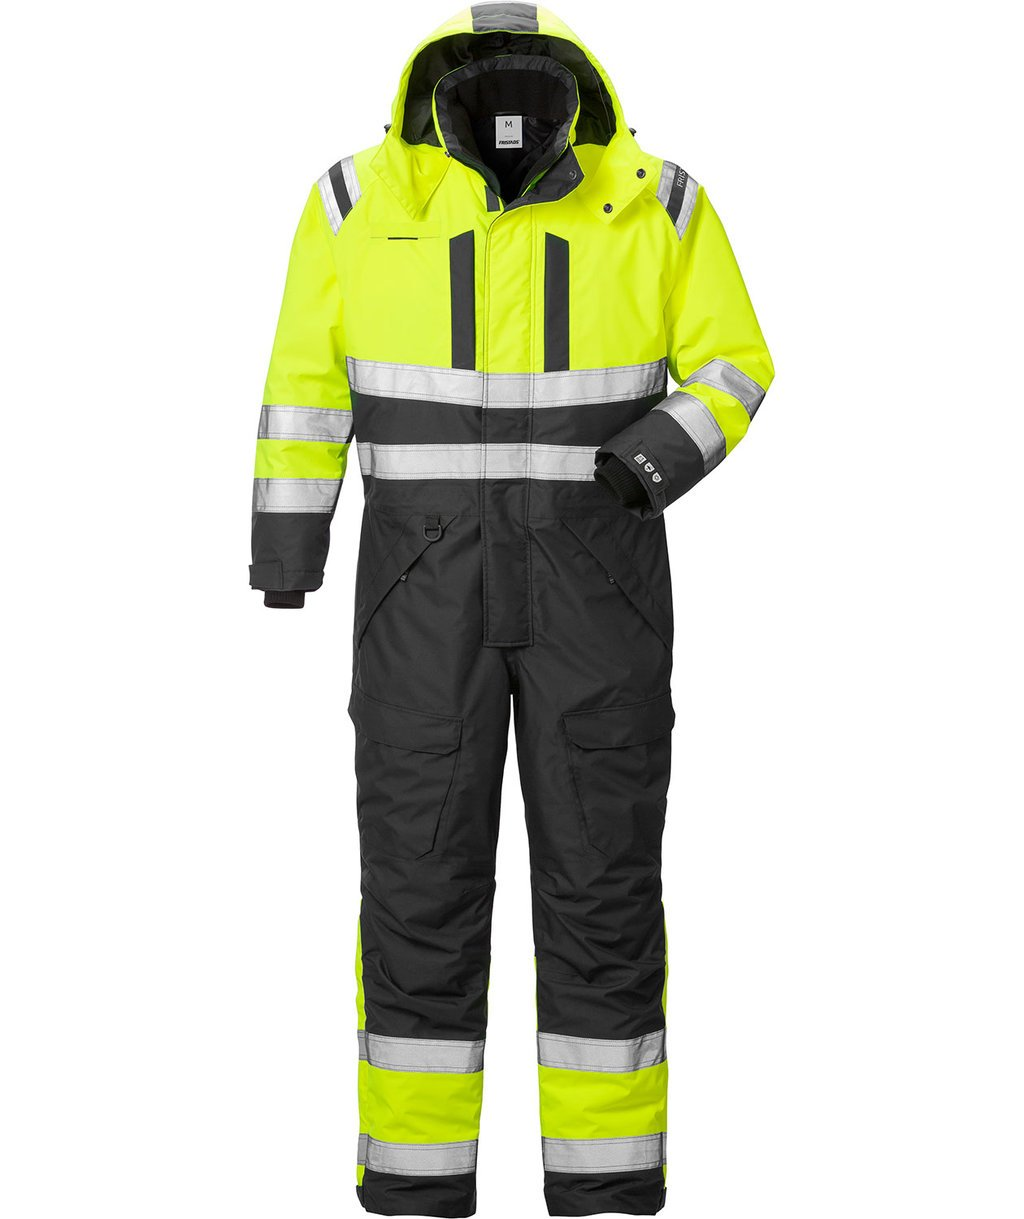 Fristads Airtech® thermal coverall 8015, Hi-Vis Yellow/Black